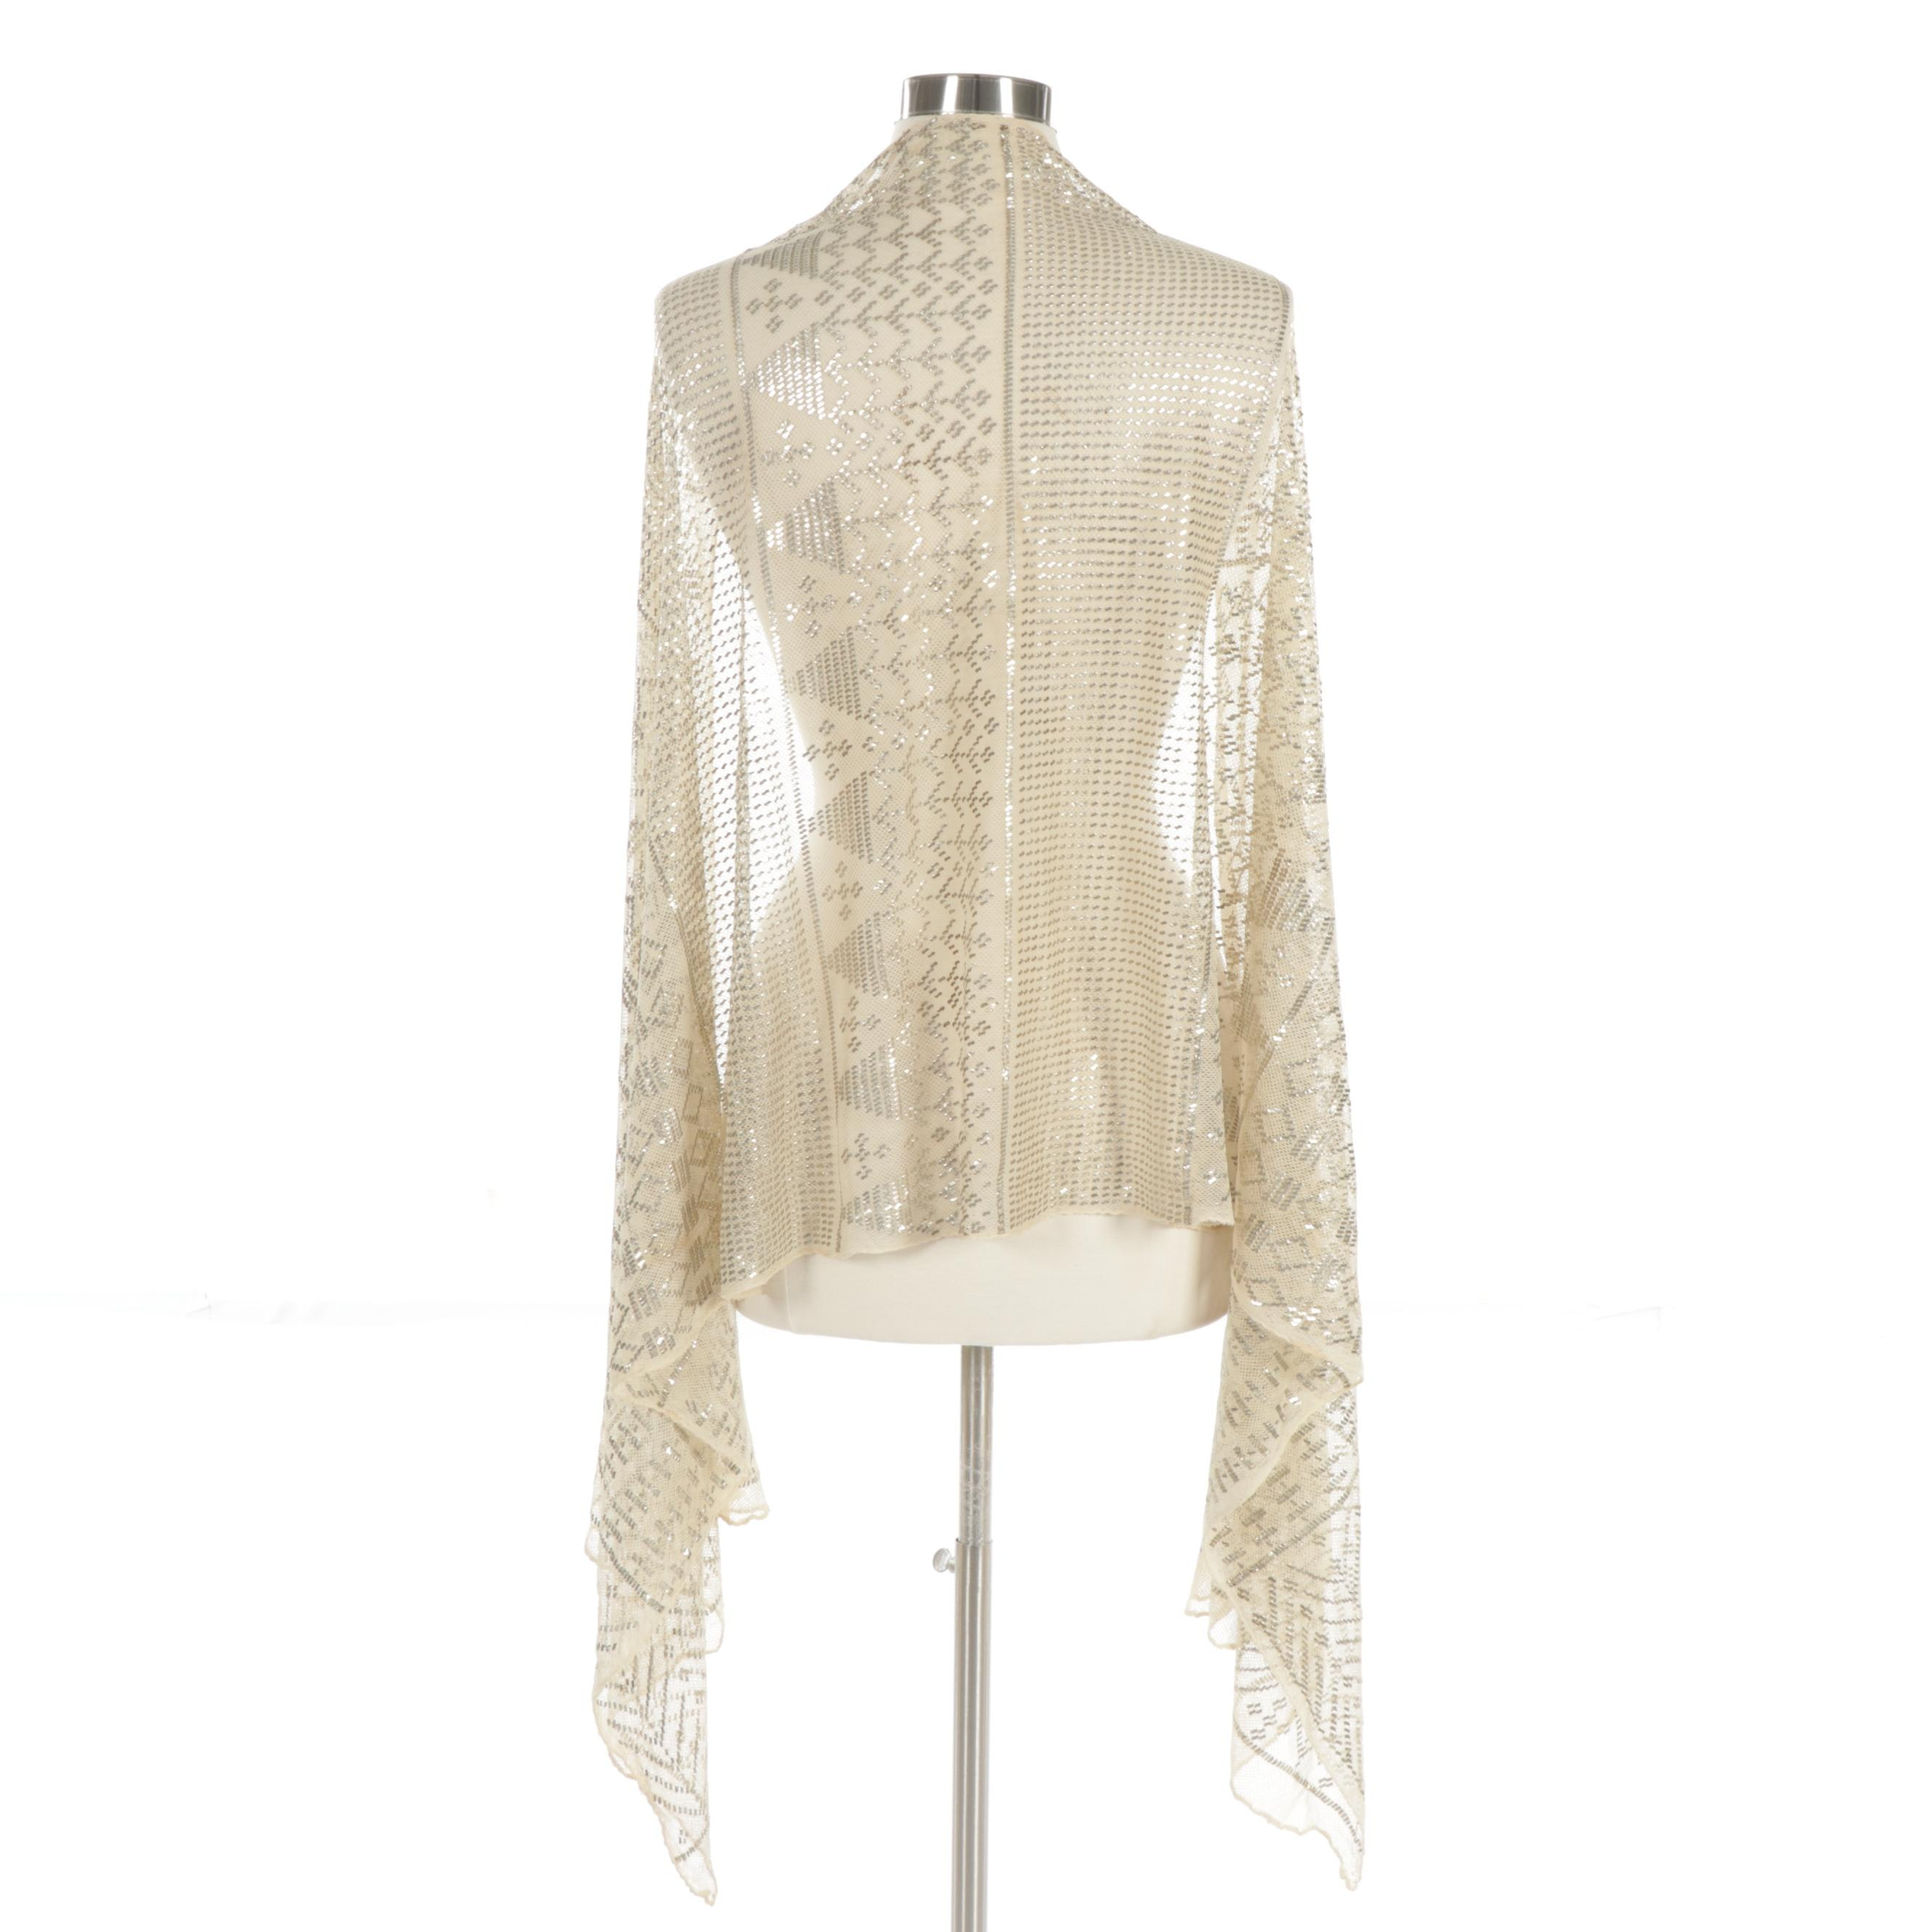 Egyptian Revival Embellished Assuit Shawl, 1920s Vintage